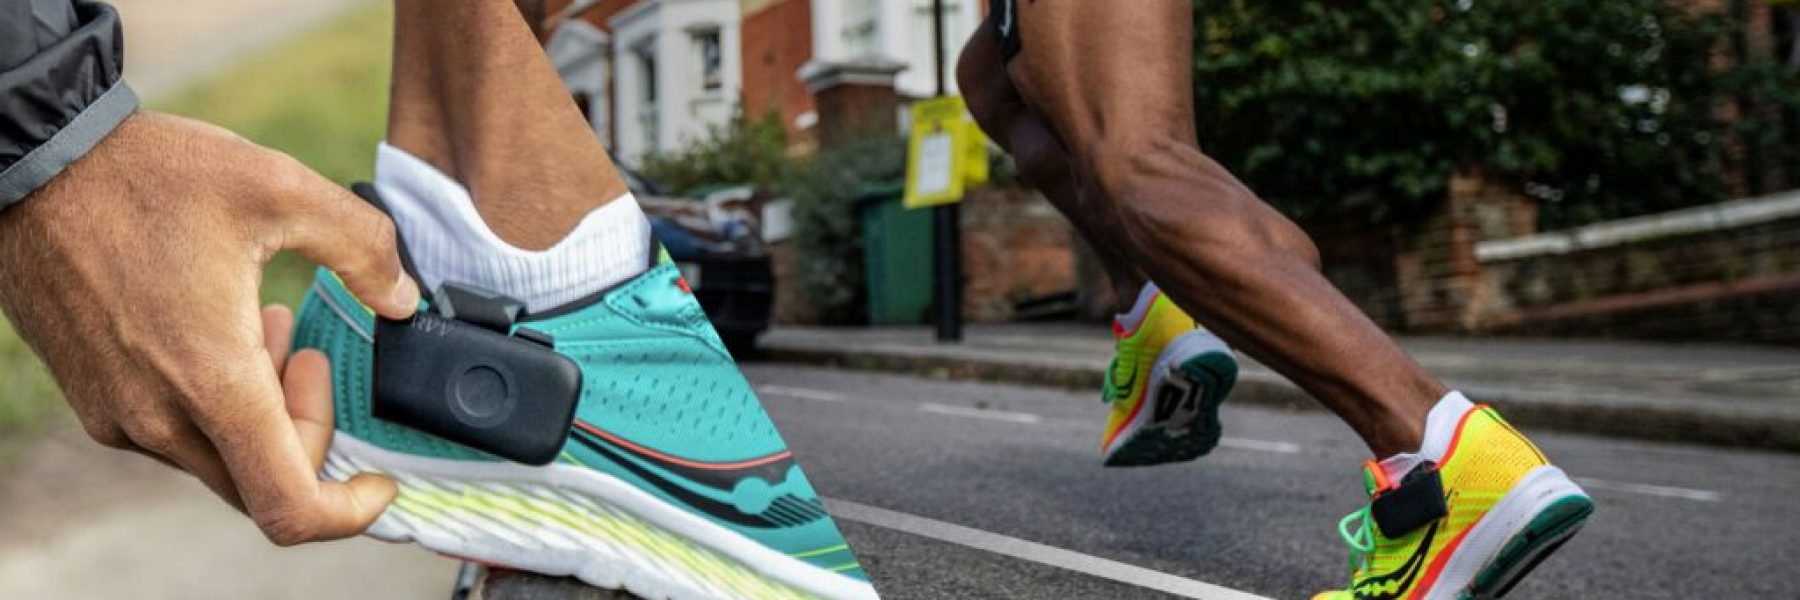 NURVV Run Insoles – The Smart Gadgets that Measure Your Running Performance from Your Shoes